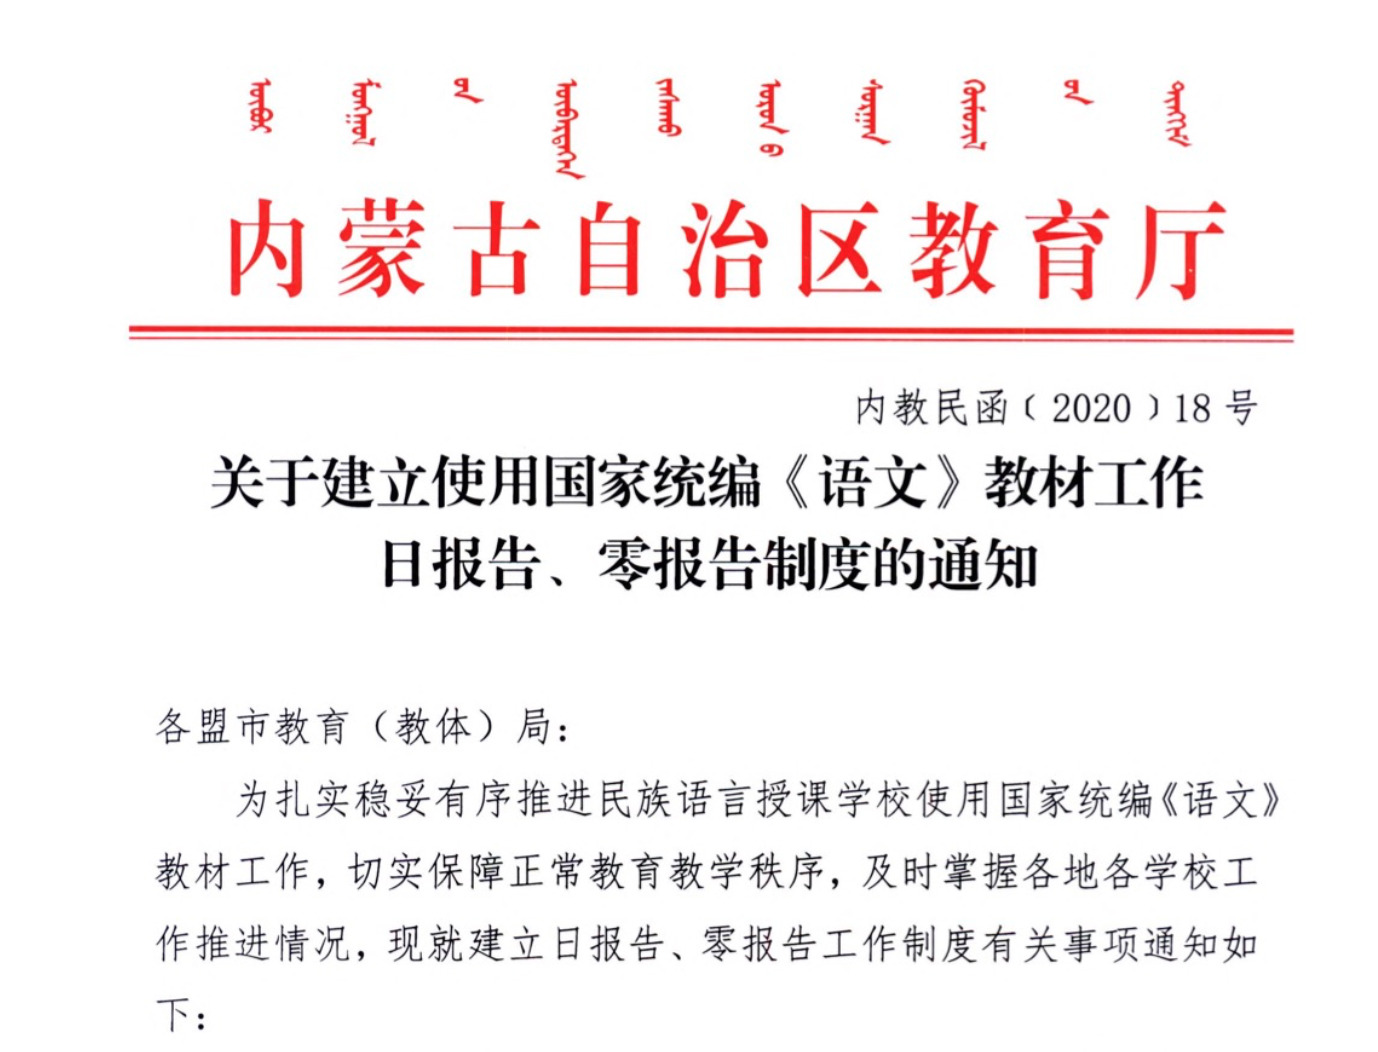 Notice of the Inner Mongolia Autonomous Region's Education Office stressing daily reporting on the implementation of the new language policy, which is aimed at teaching more classes in Mandarin than in native Mongolian.